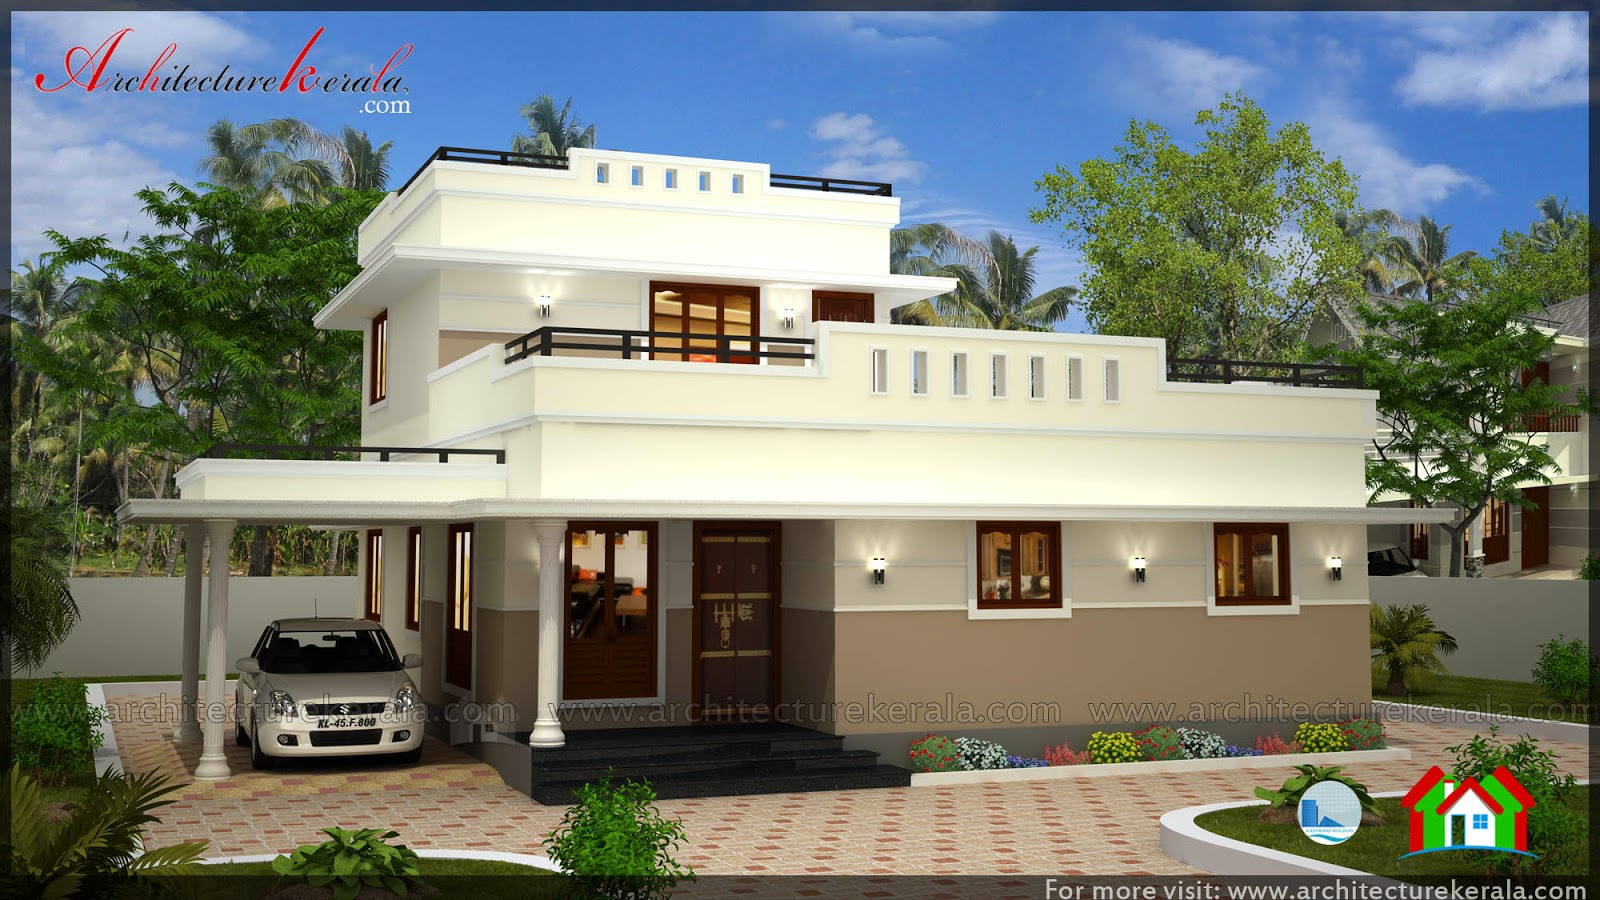 house plans in kerala style with photos with Plan And Elevation on 10287 furthermore Designs Houses Outlook also Nautilus Houseboats likewise Plan And Elevation likewise Simple Elevation House Plan In Below.